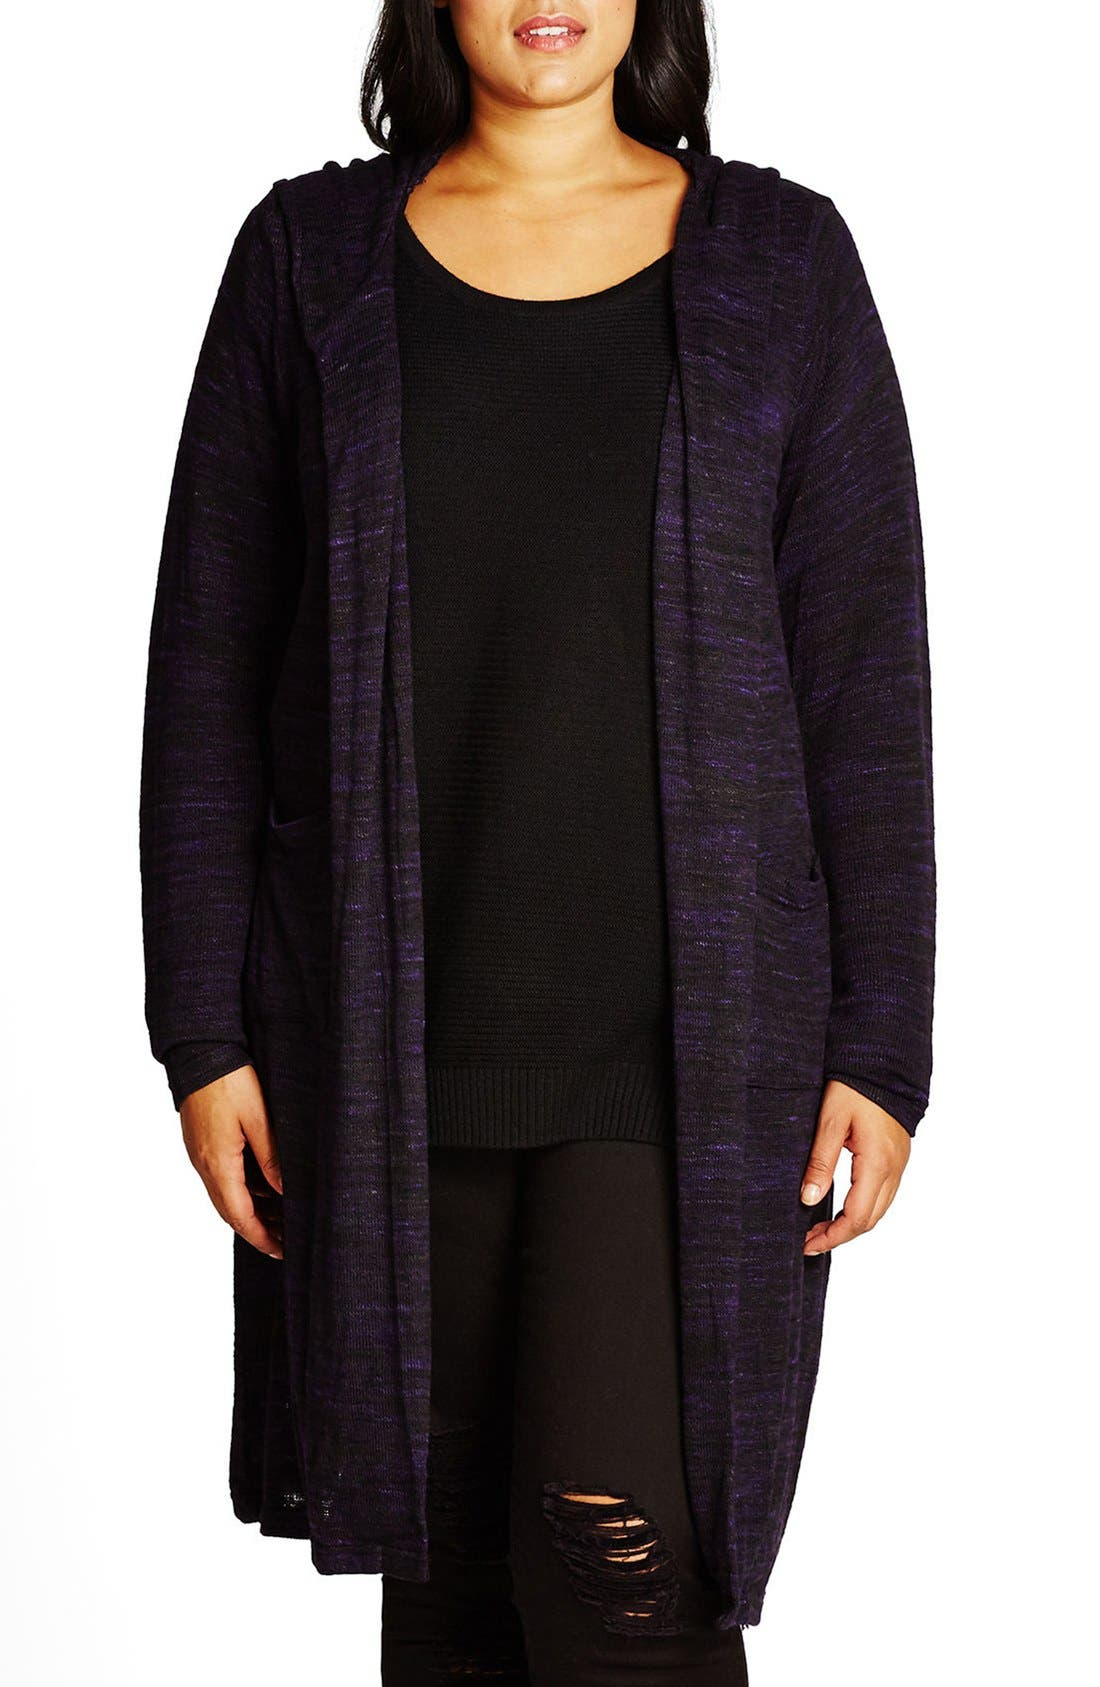 Alternate Image 1 Selected - City Chic Space Dye Hooded Cardigan (Plus Size)